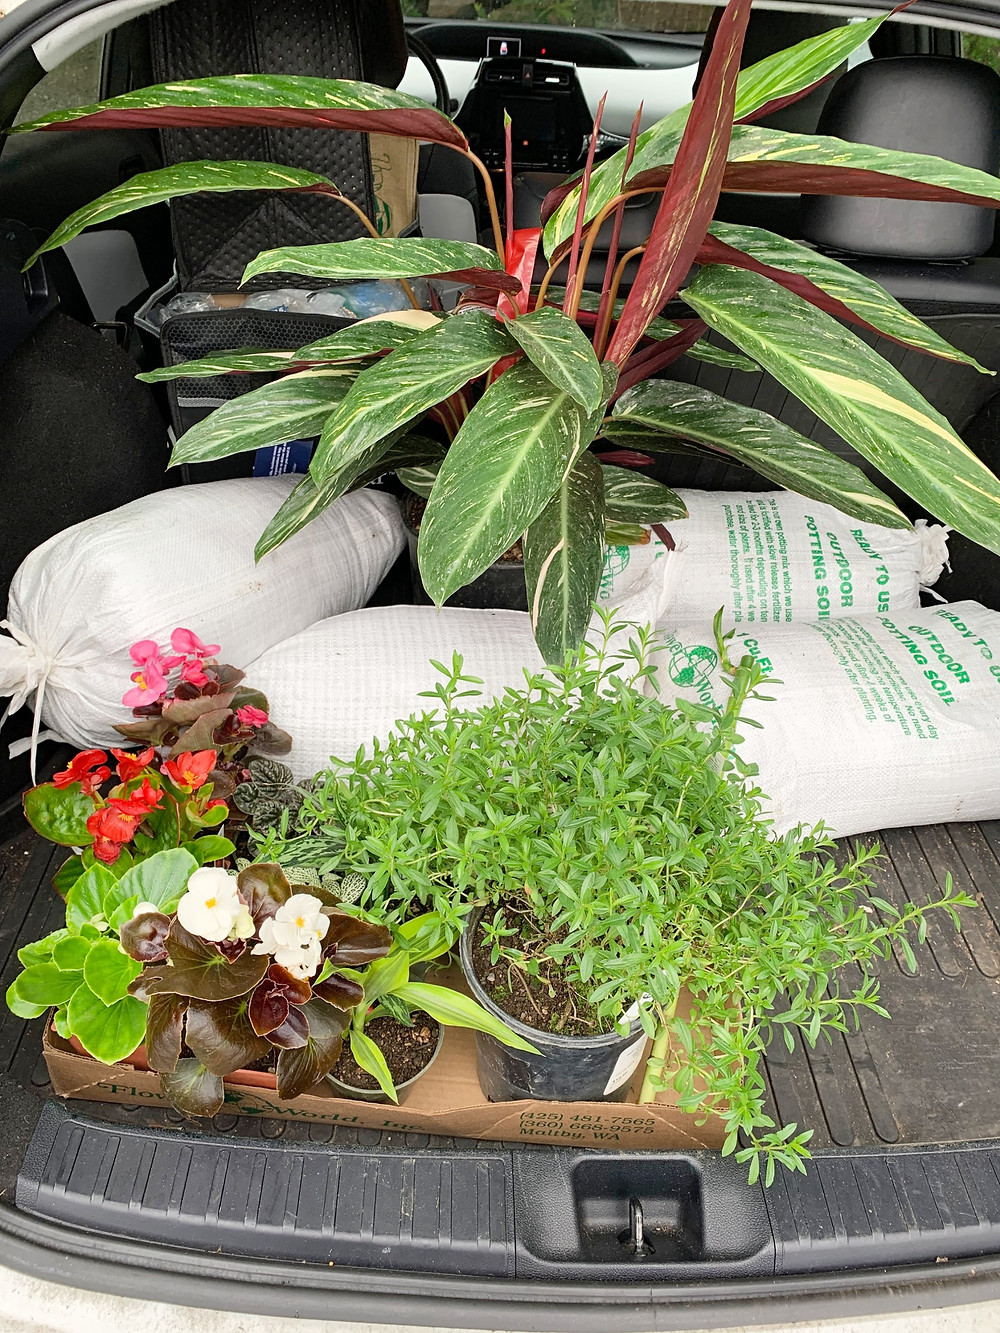 live plants stacked in the back of a car